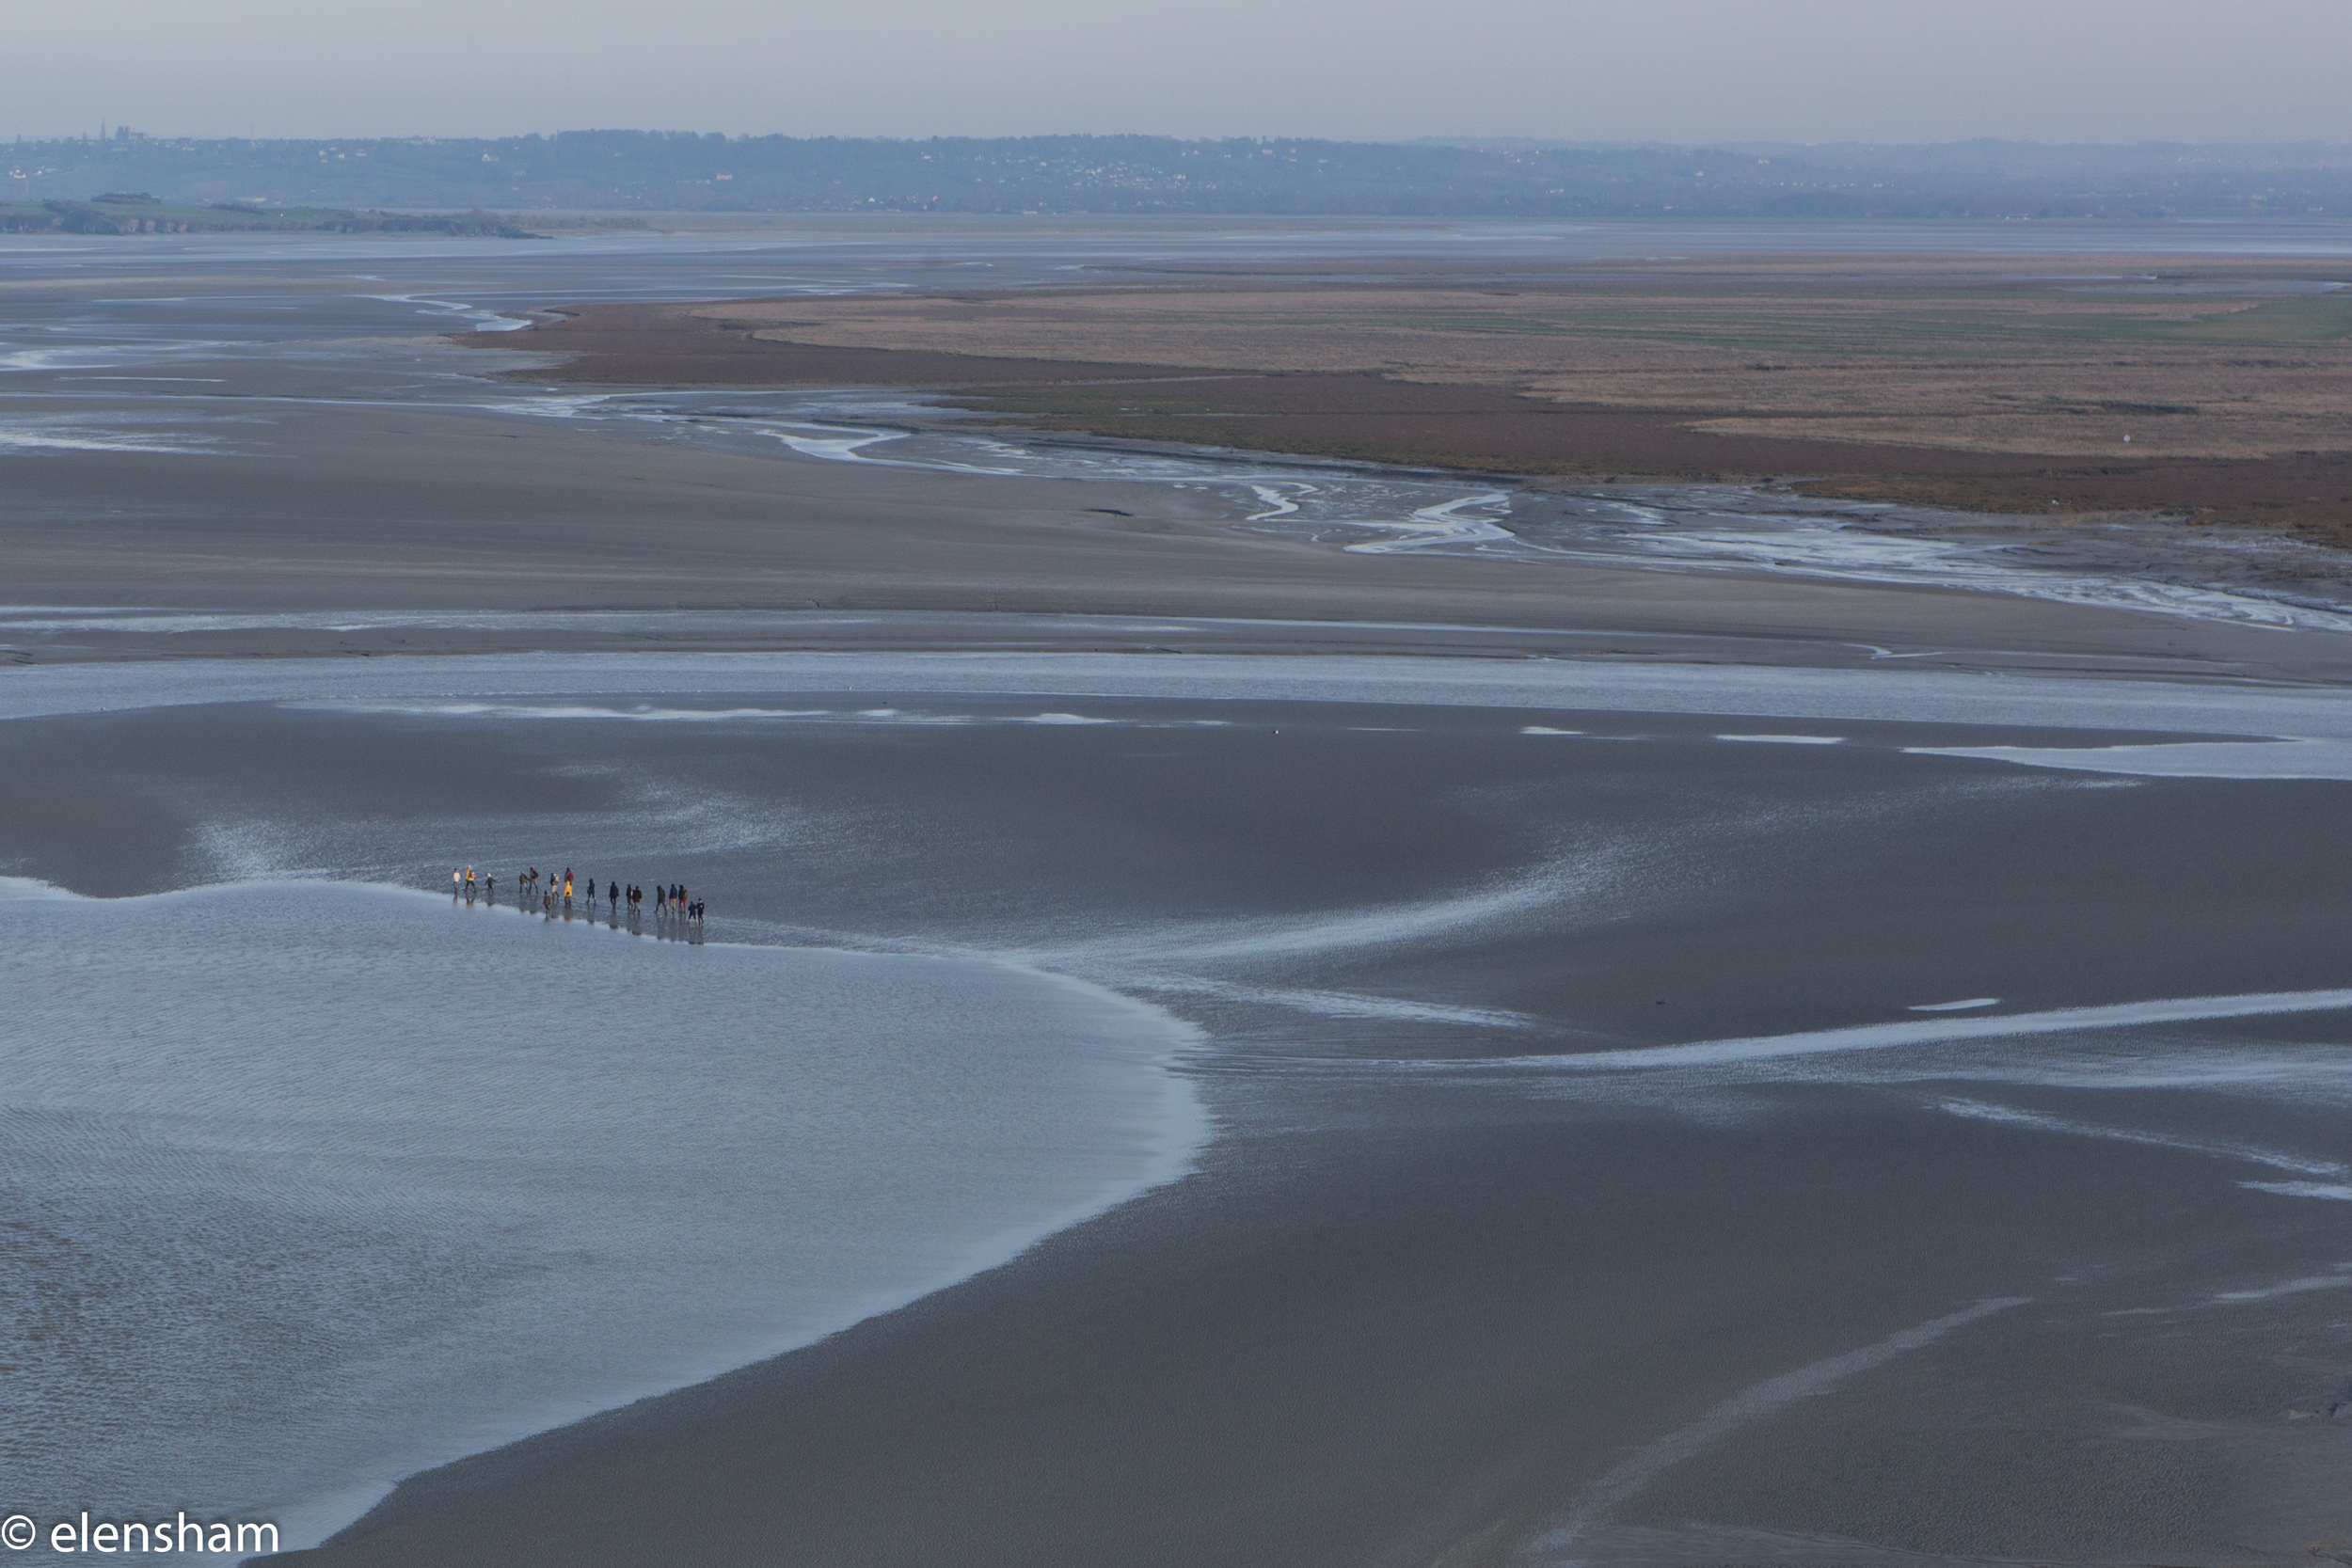 Same group as seen from Mont Saint-Michel.